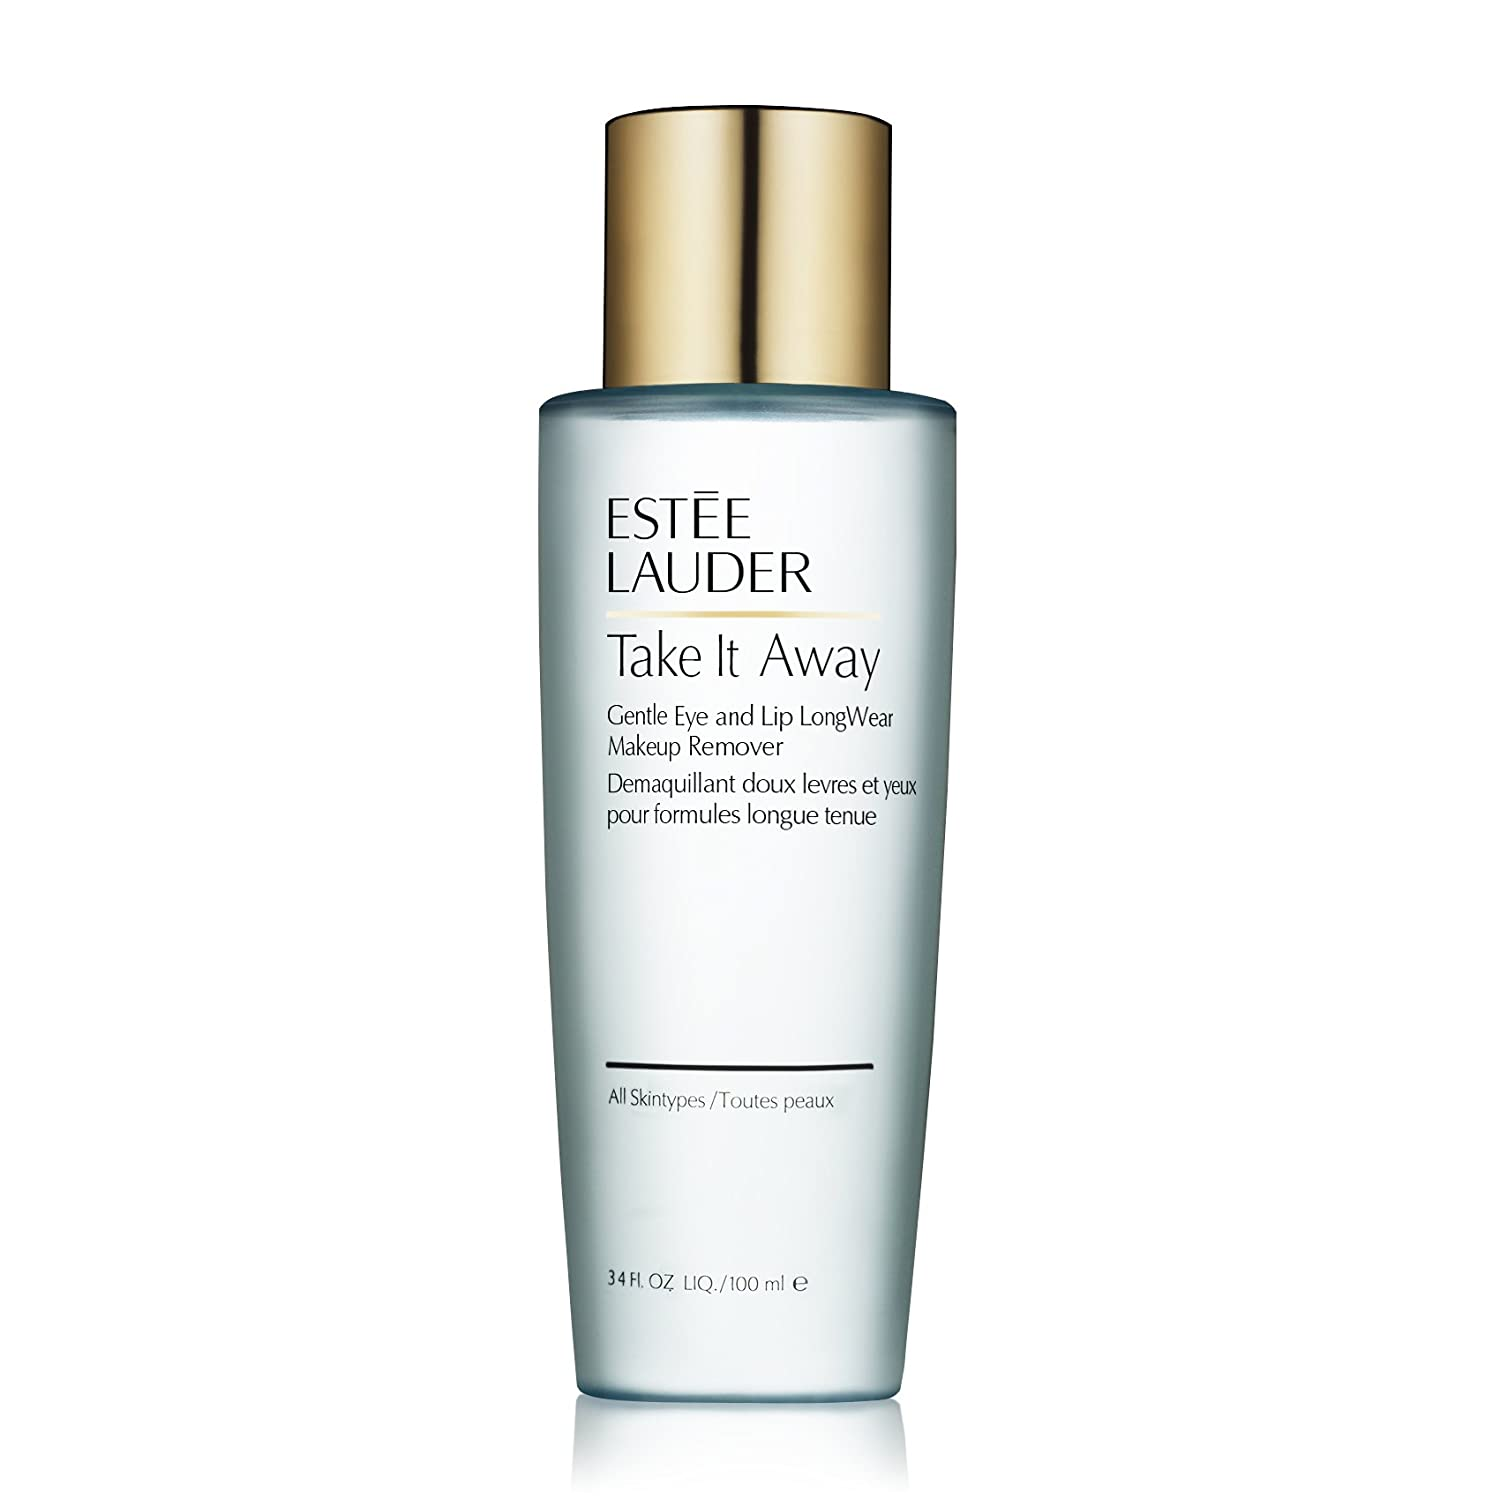 Estee Lauder Take It Away Gentle Eye and Lip Long-Wear Makeup Remover, 3.4 Ounce недорого